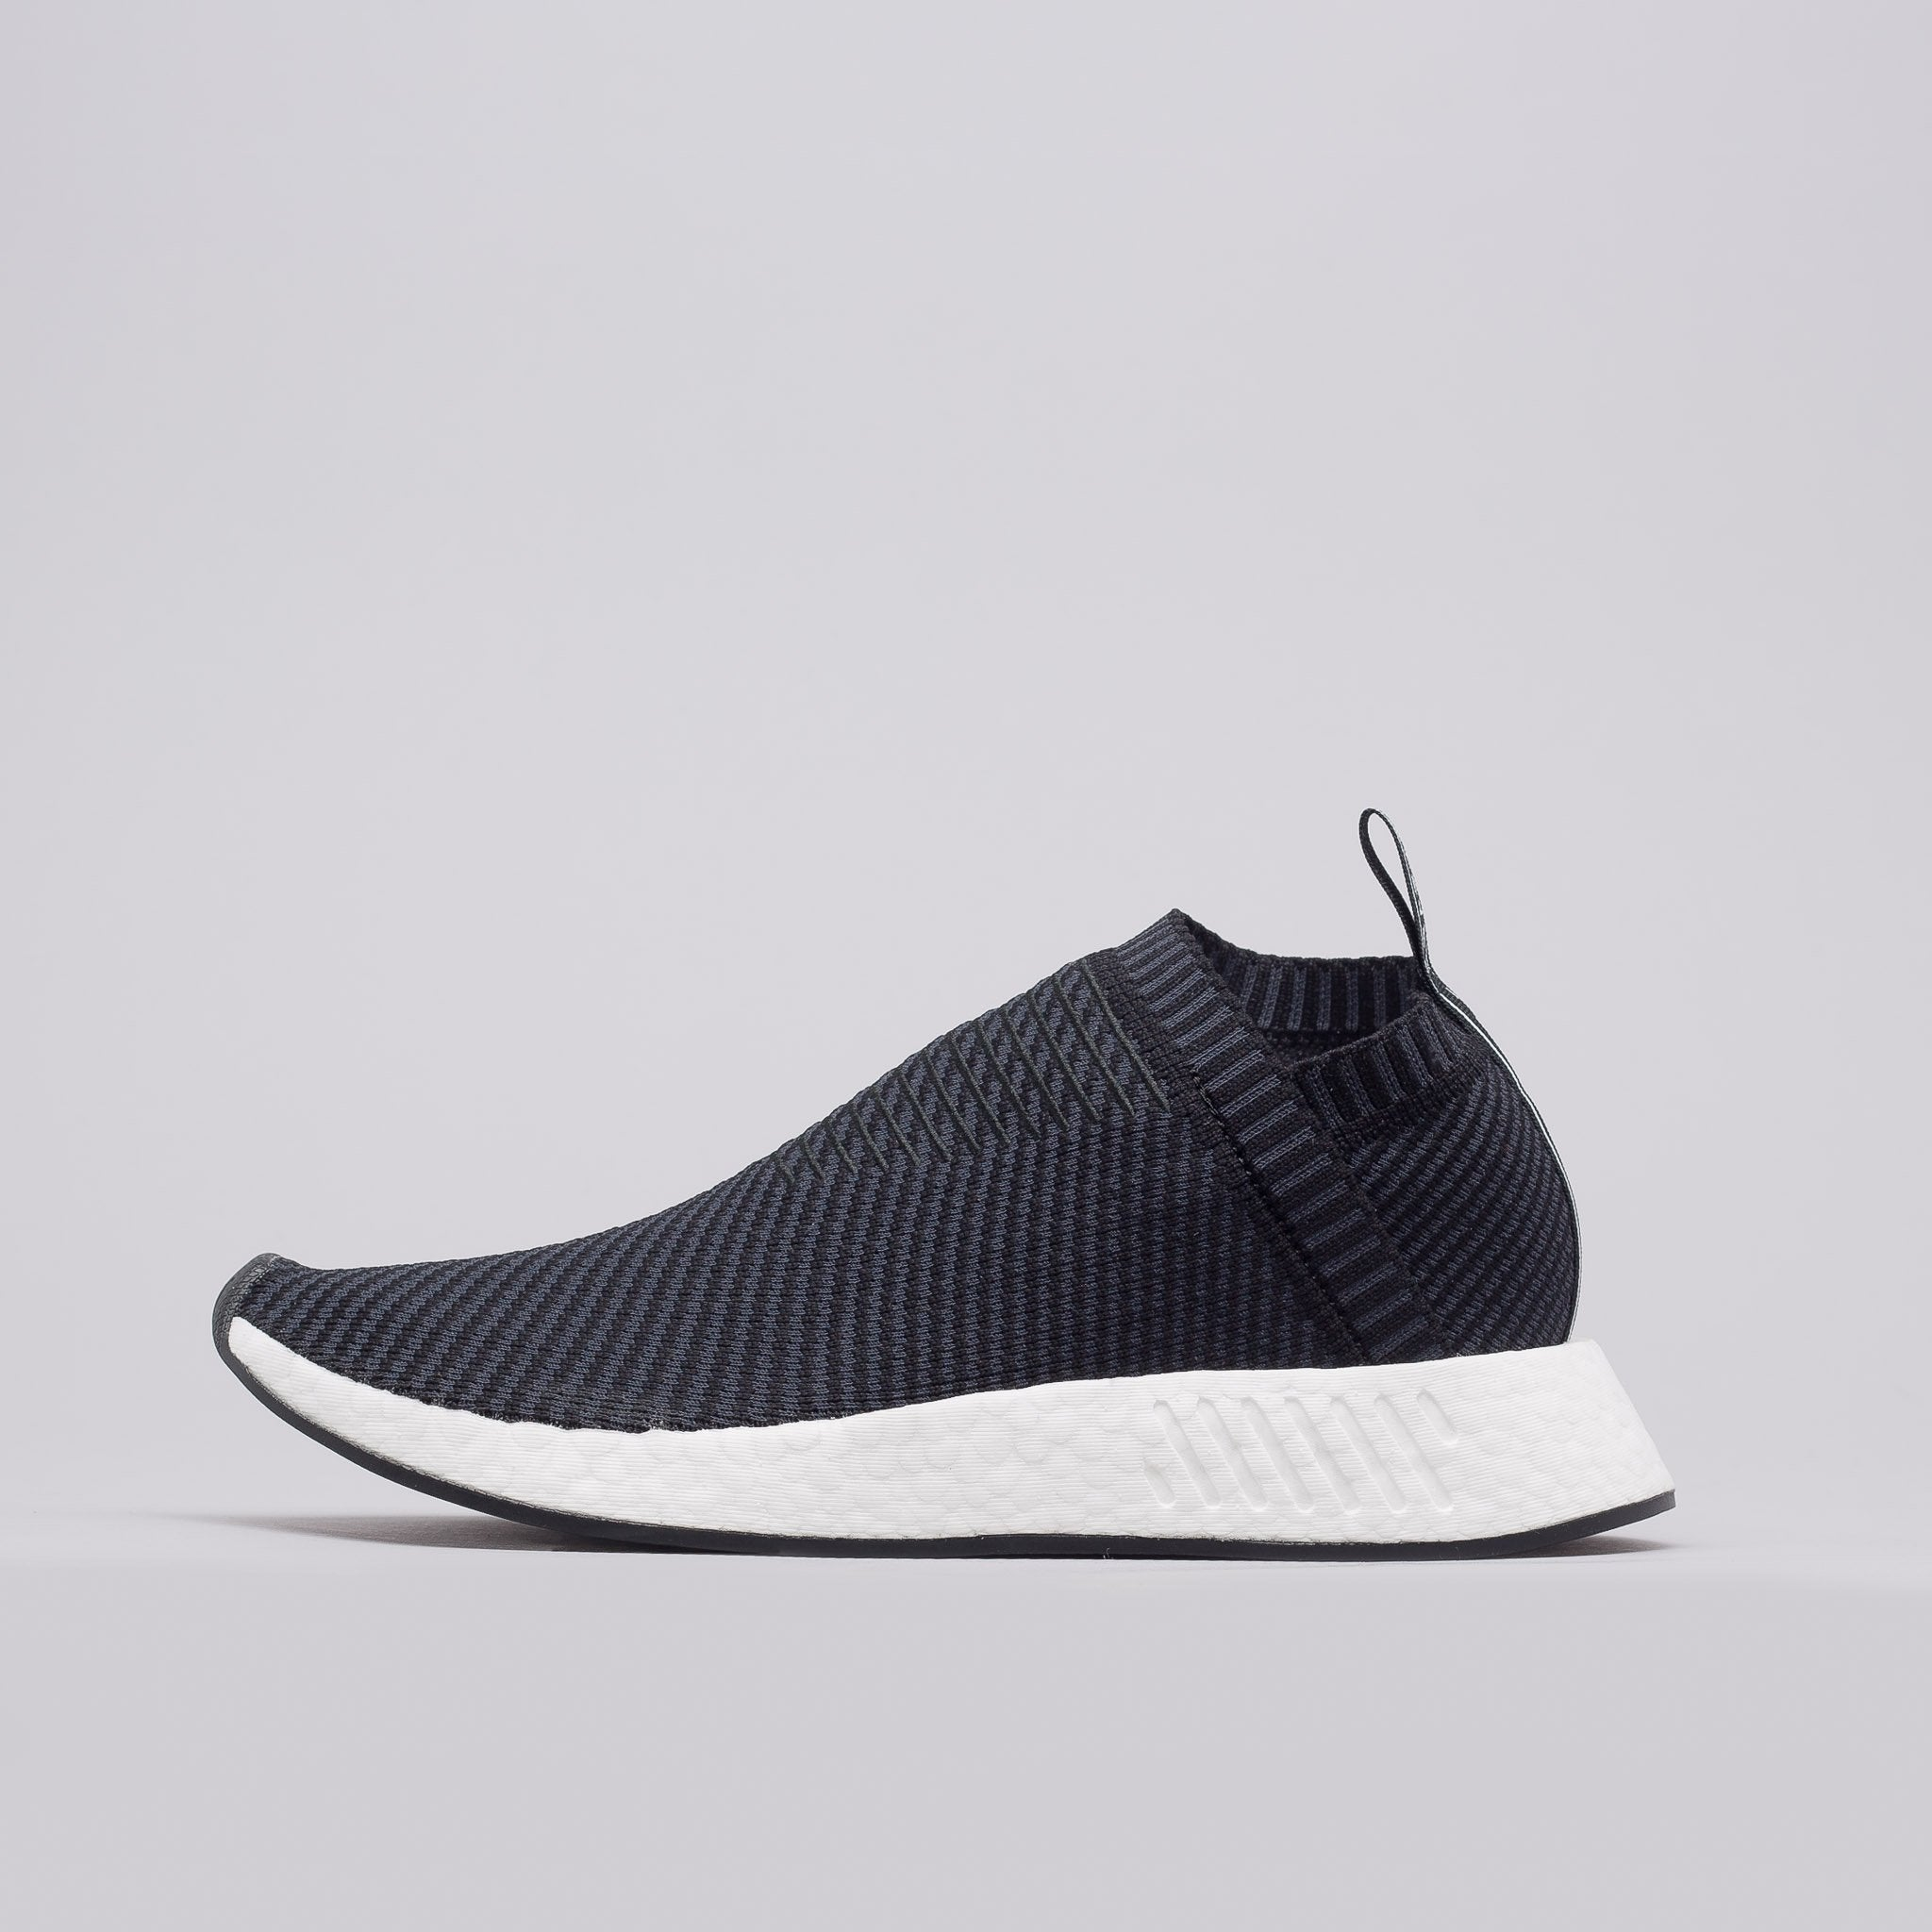 528213d63 NMD CS2 Primeknit in Core Black Carbon – PZOZO